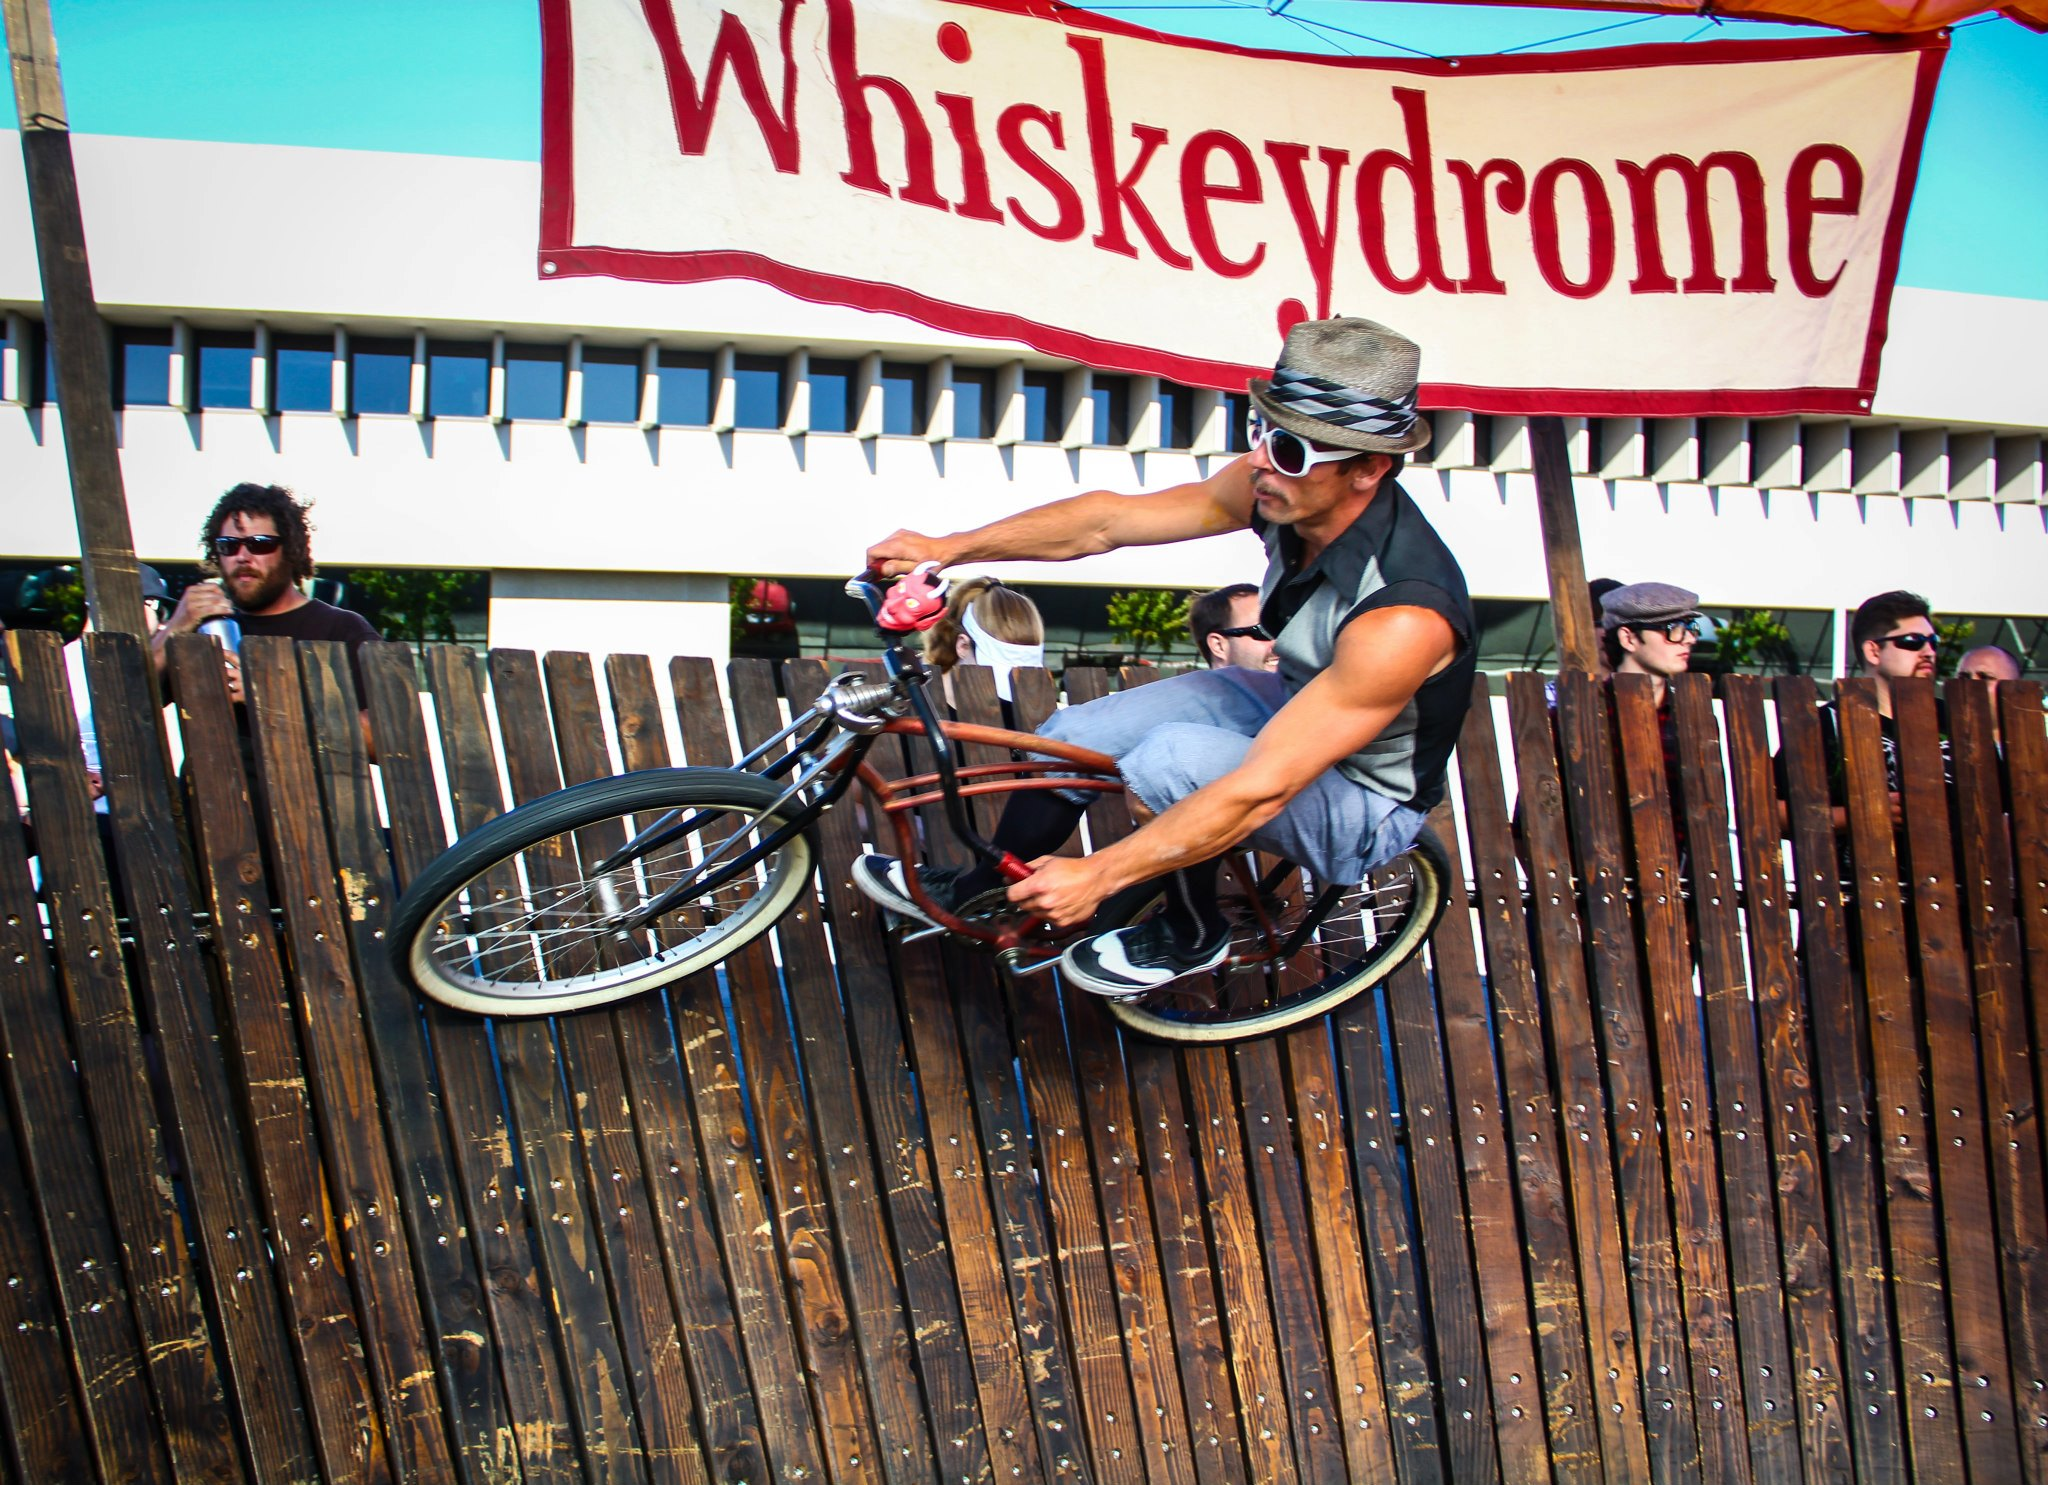 josh in whiskeydrome